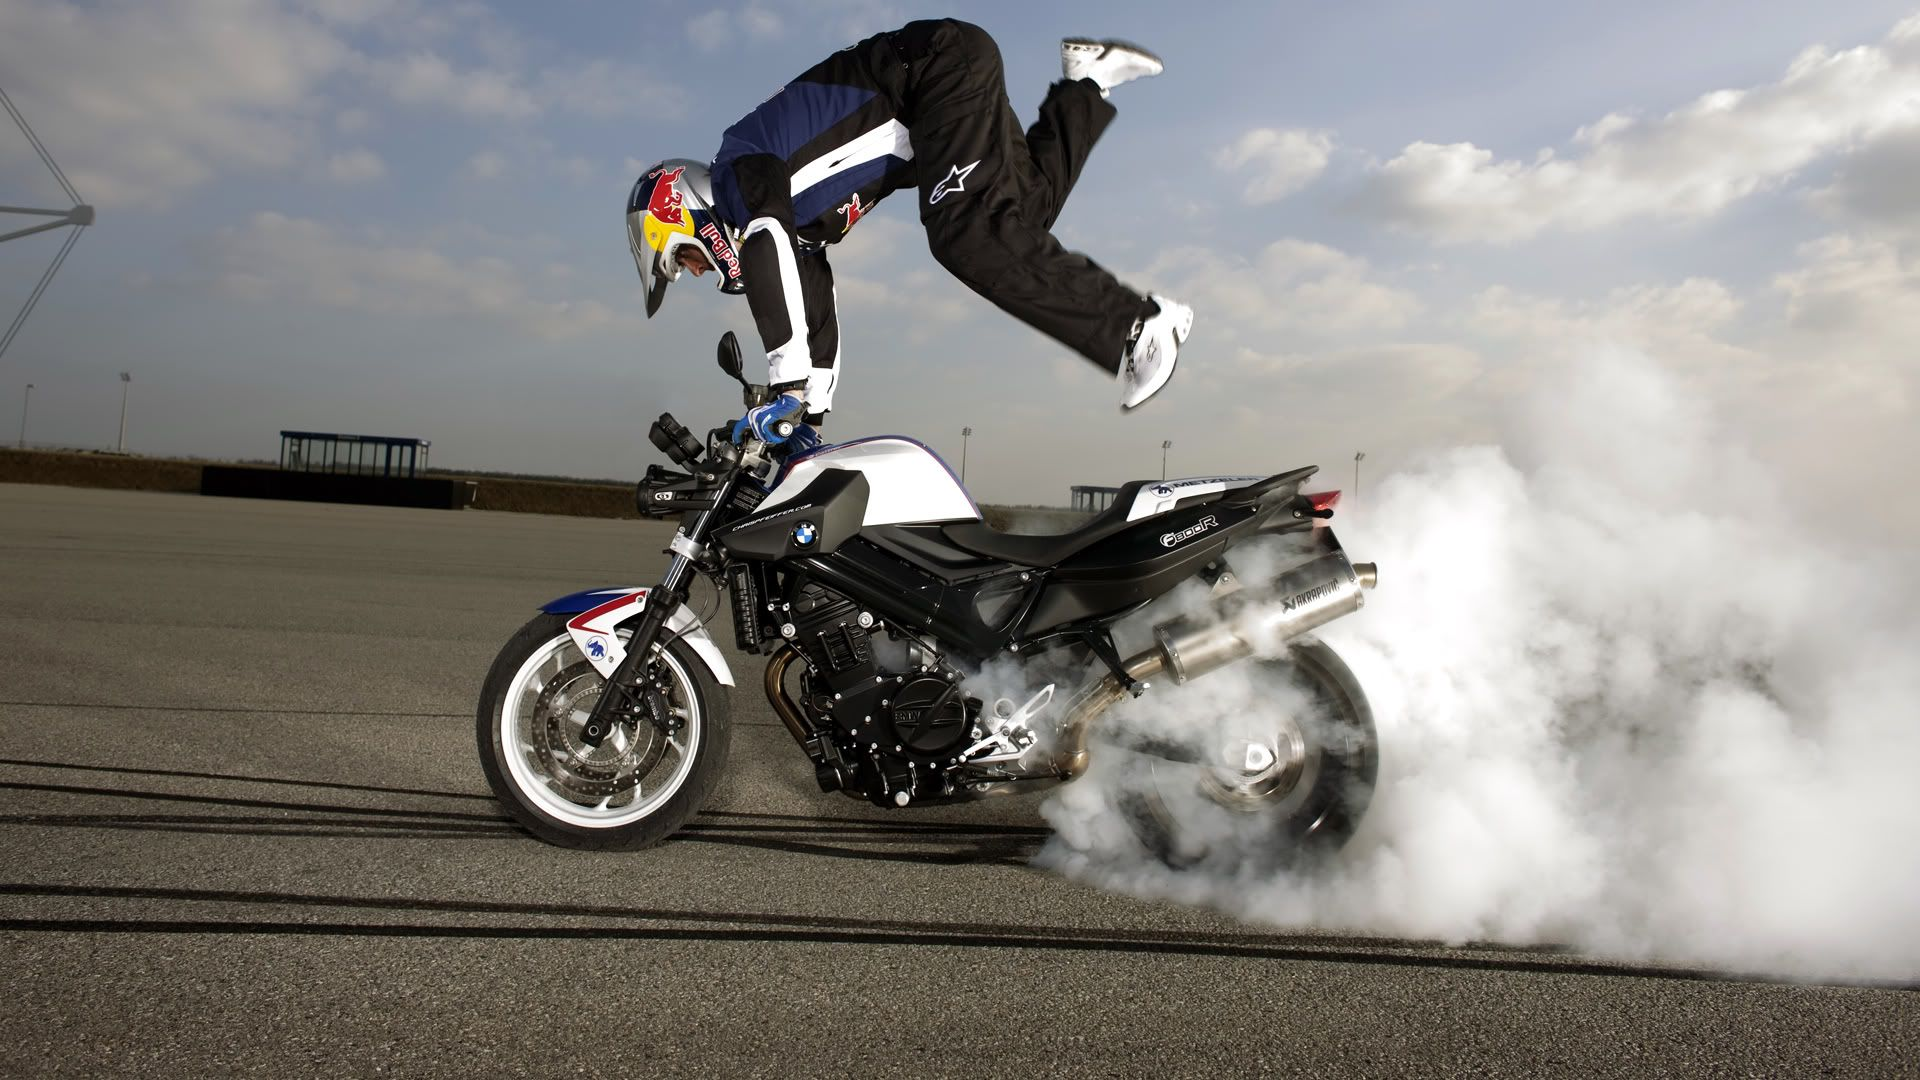 motorcycle stunt wallpaper | images wallpapers | pinterest | stunt